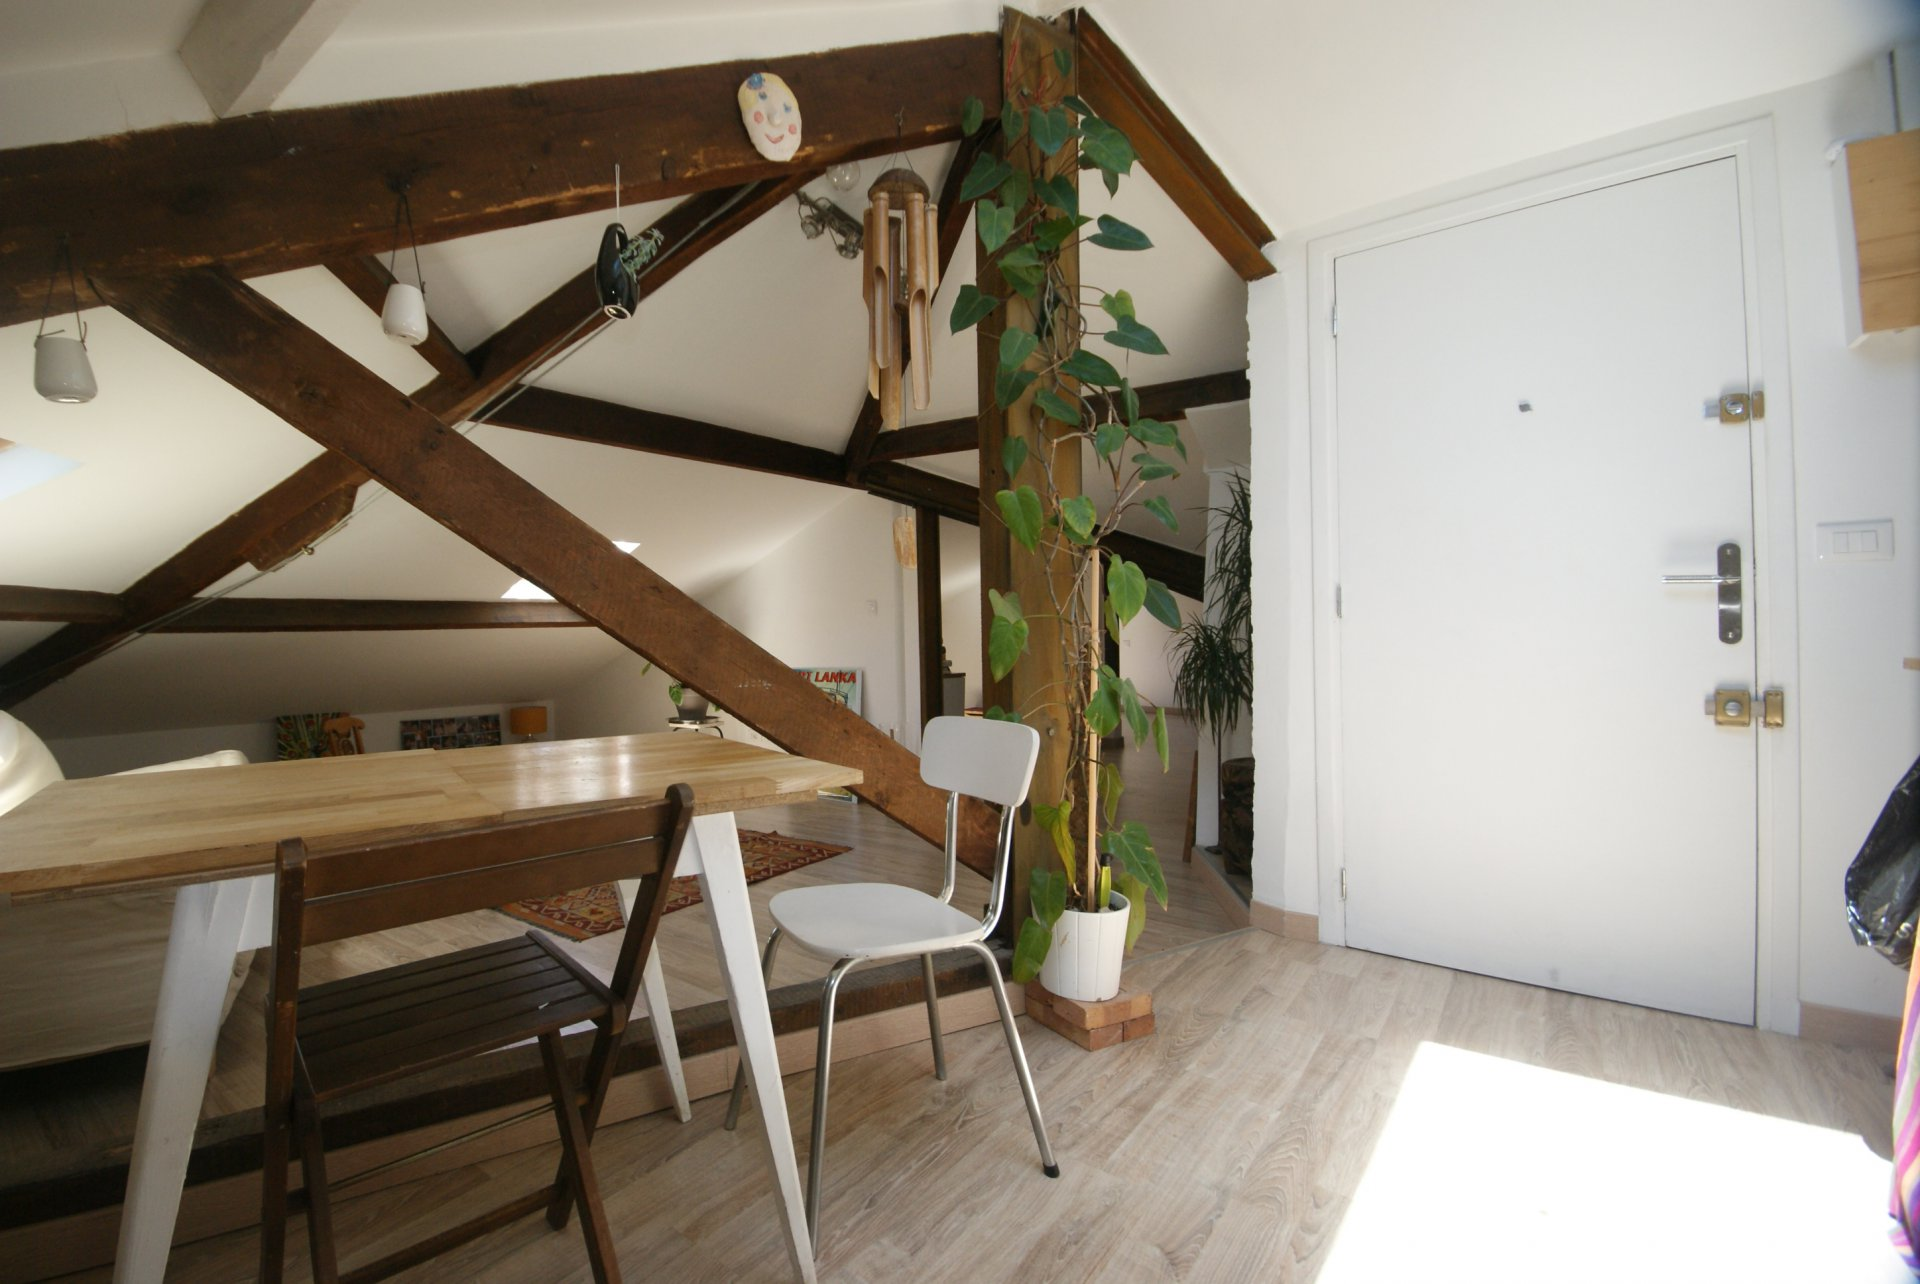 LOFT REPUBLIQUE